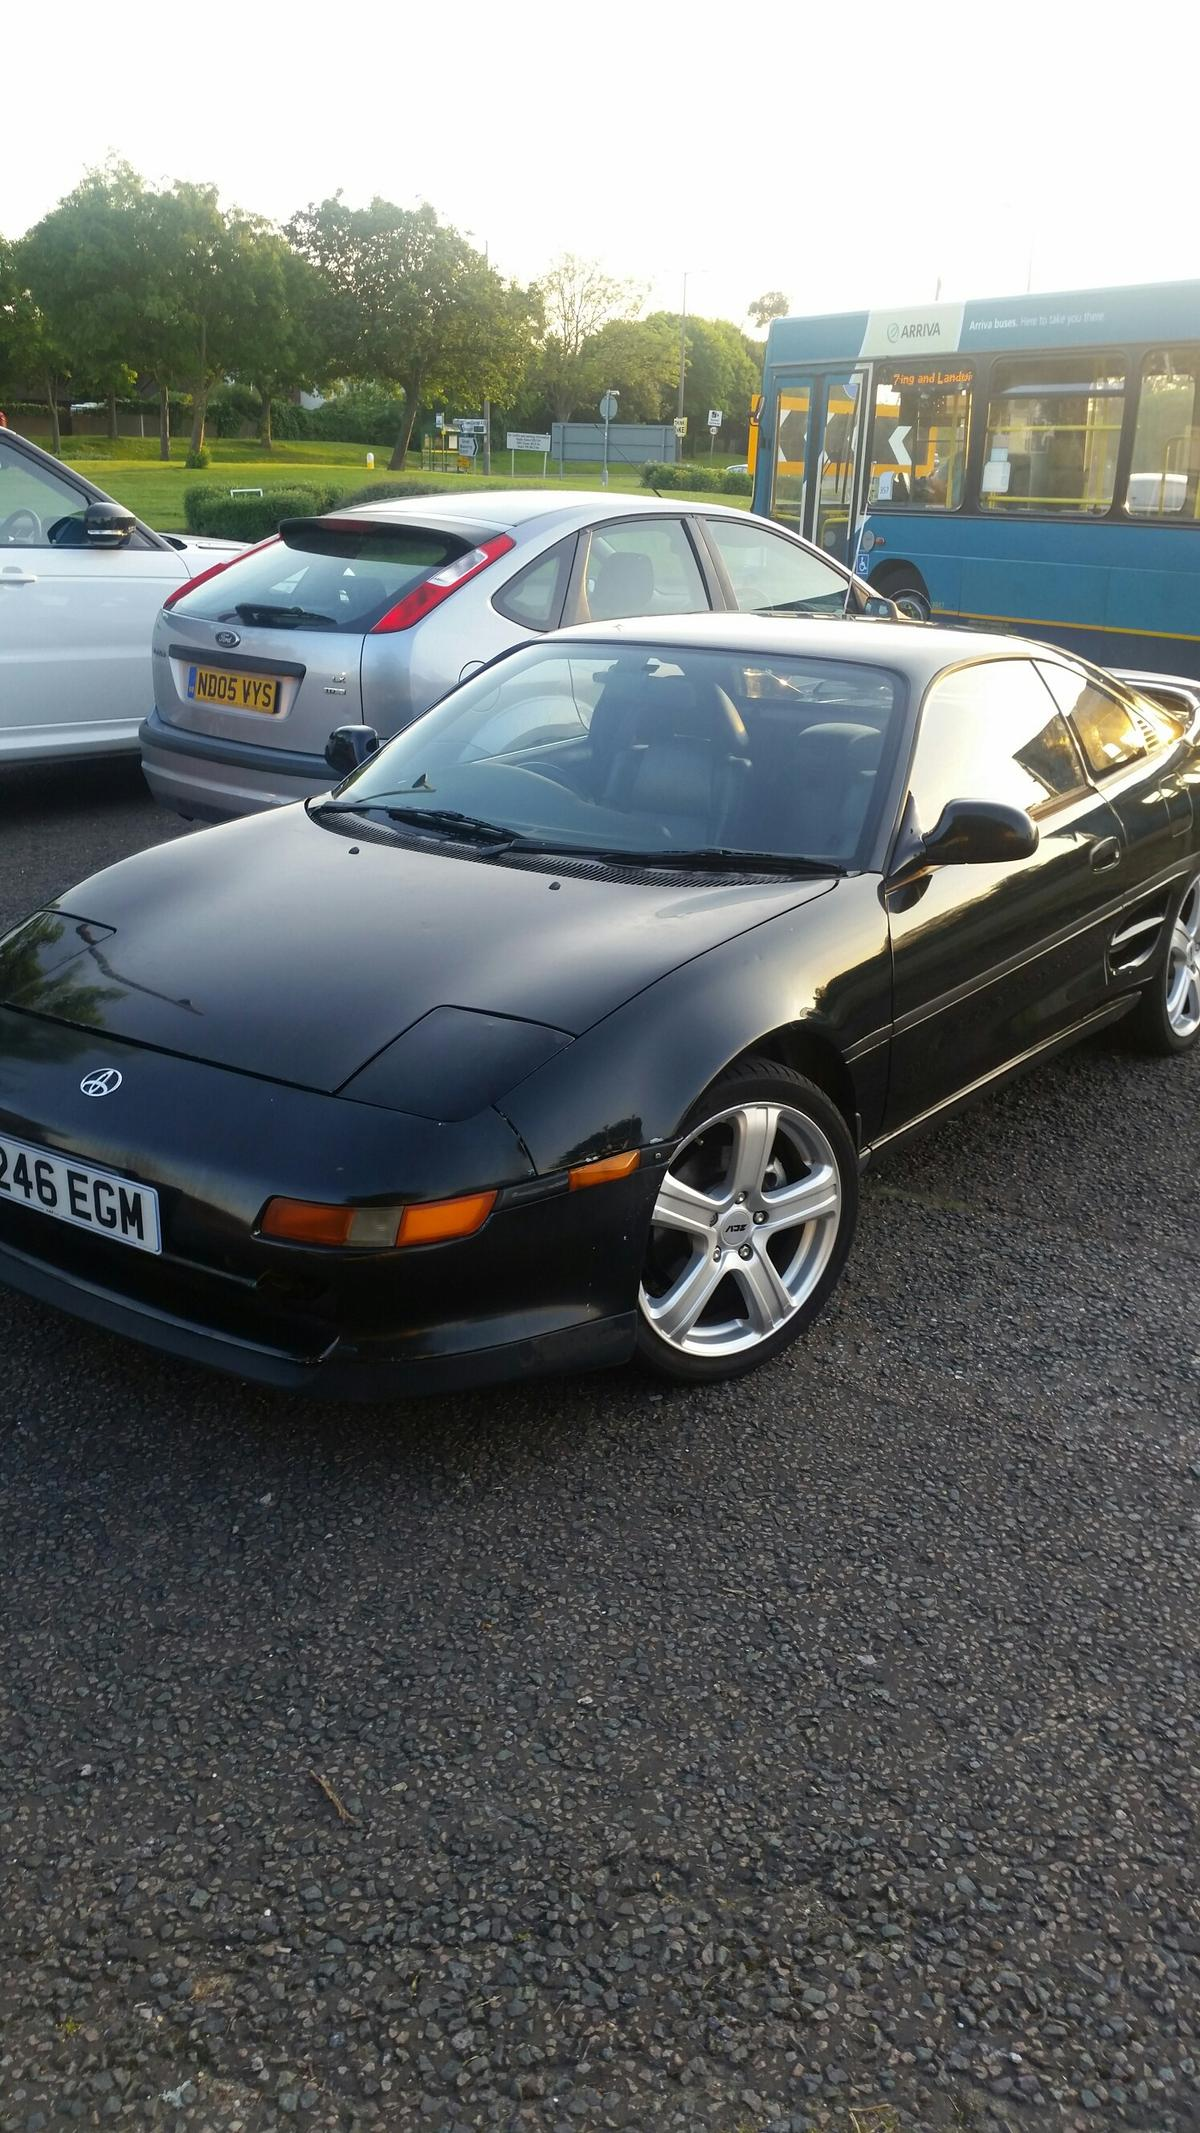 Toyota mr2 G LTD in SS3-Sea for £1,600 00 for sale - Shpock